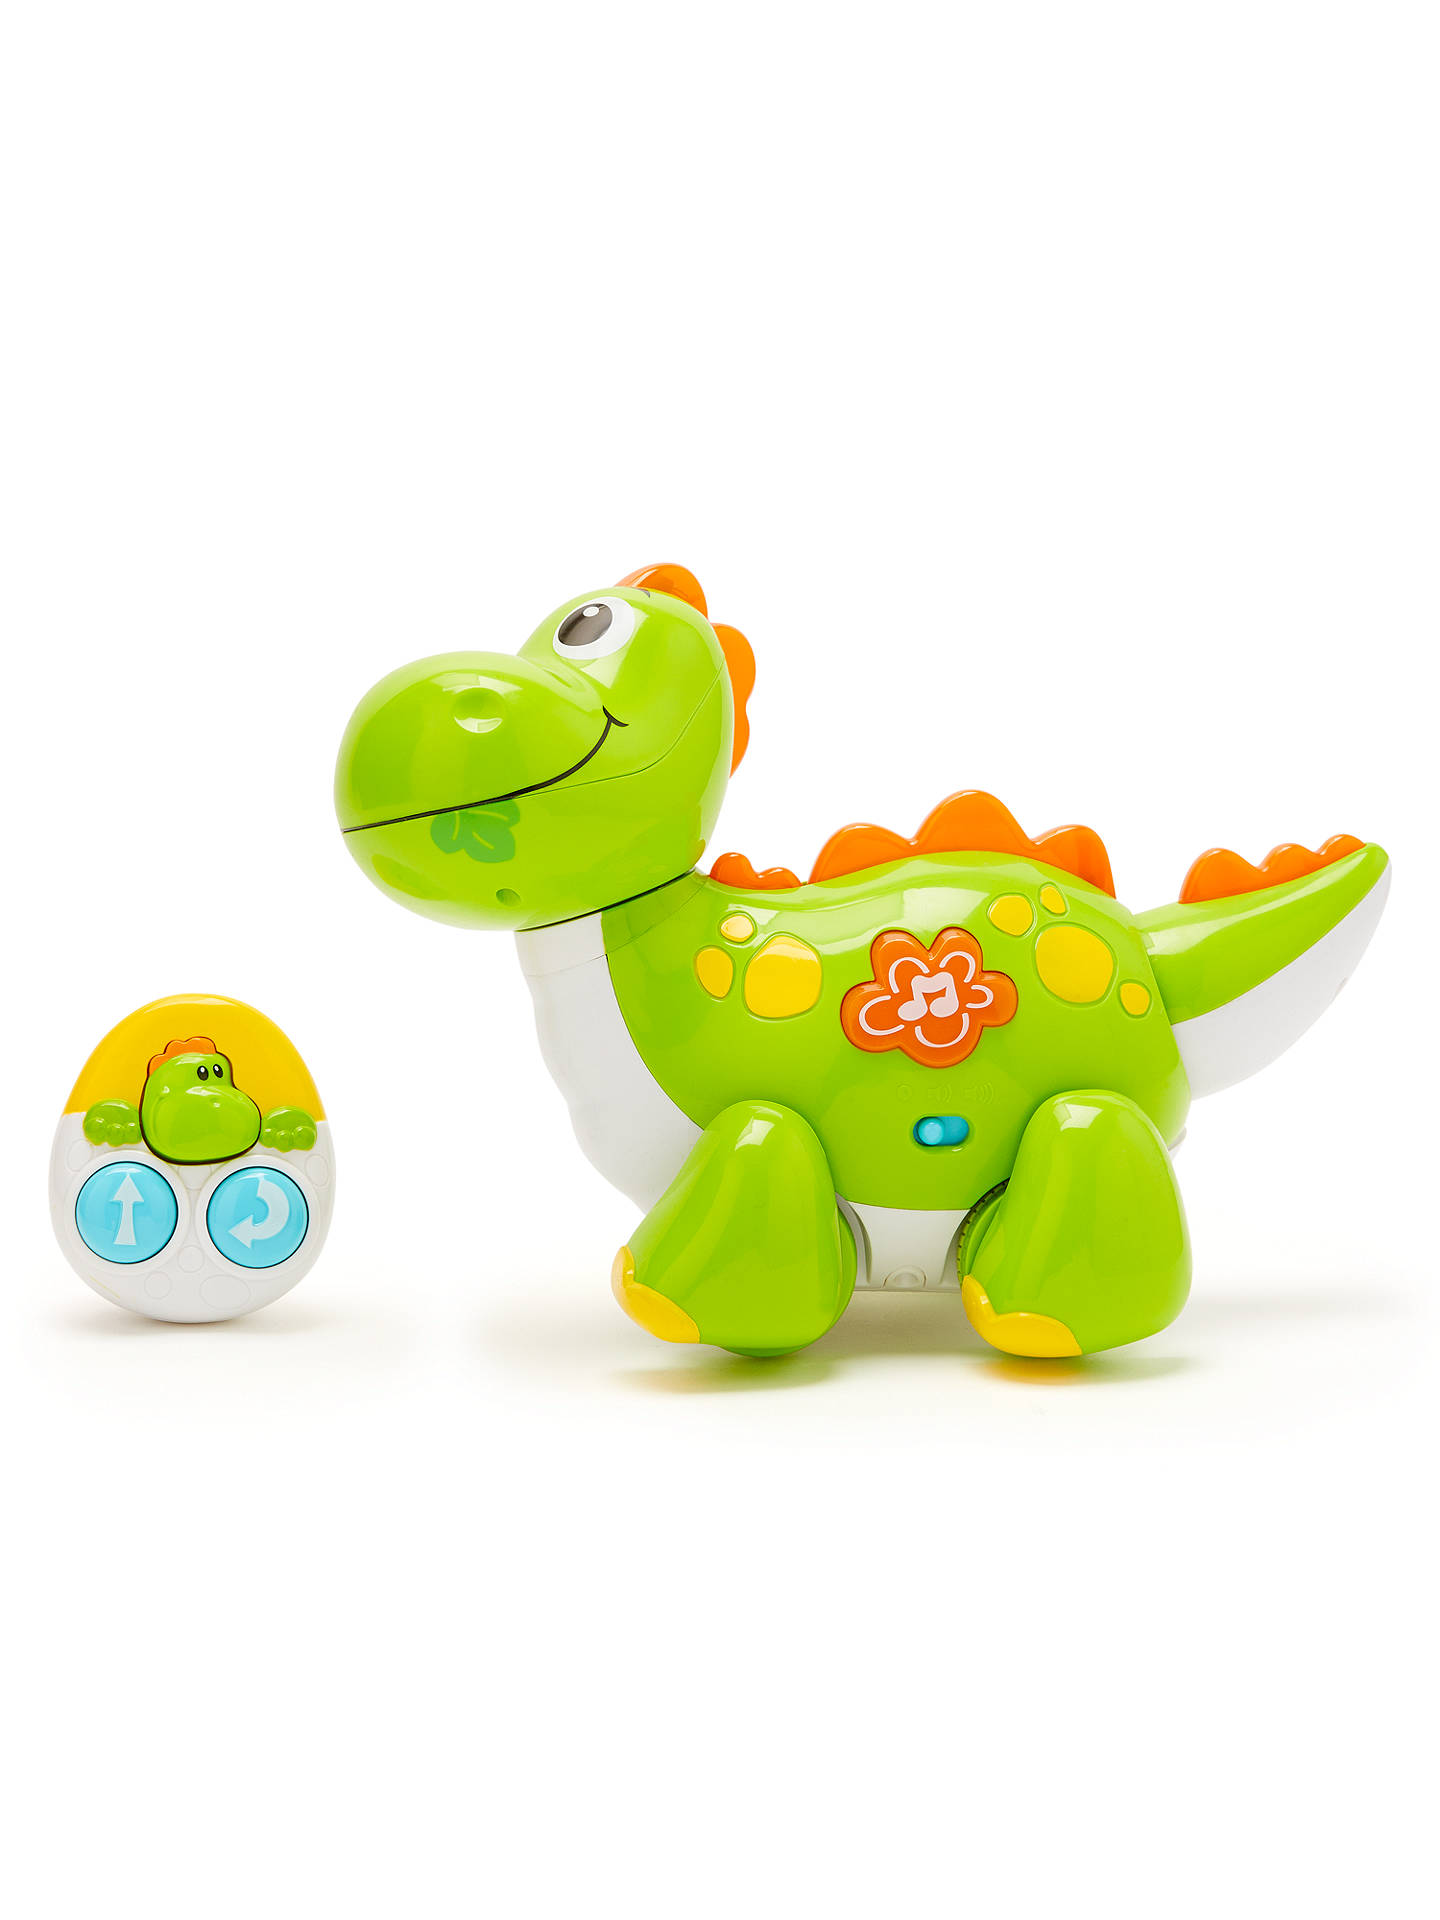 Loyal Walking Dinosaur Toy Toys & Hobbies Animals & Dinosaurs